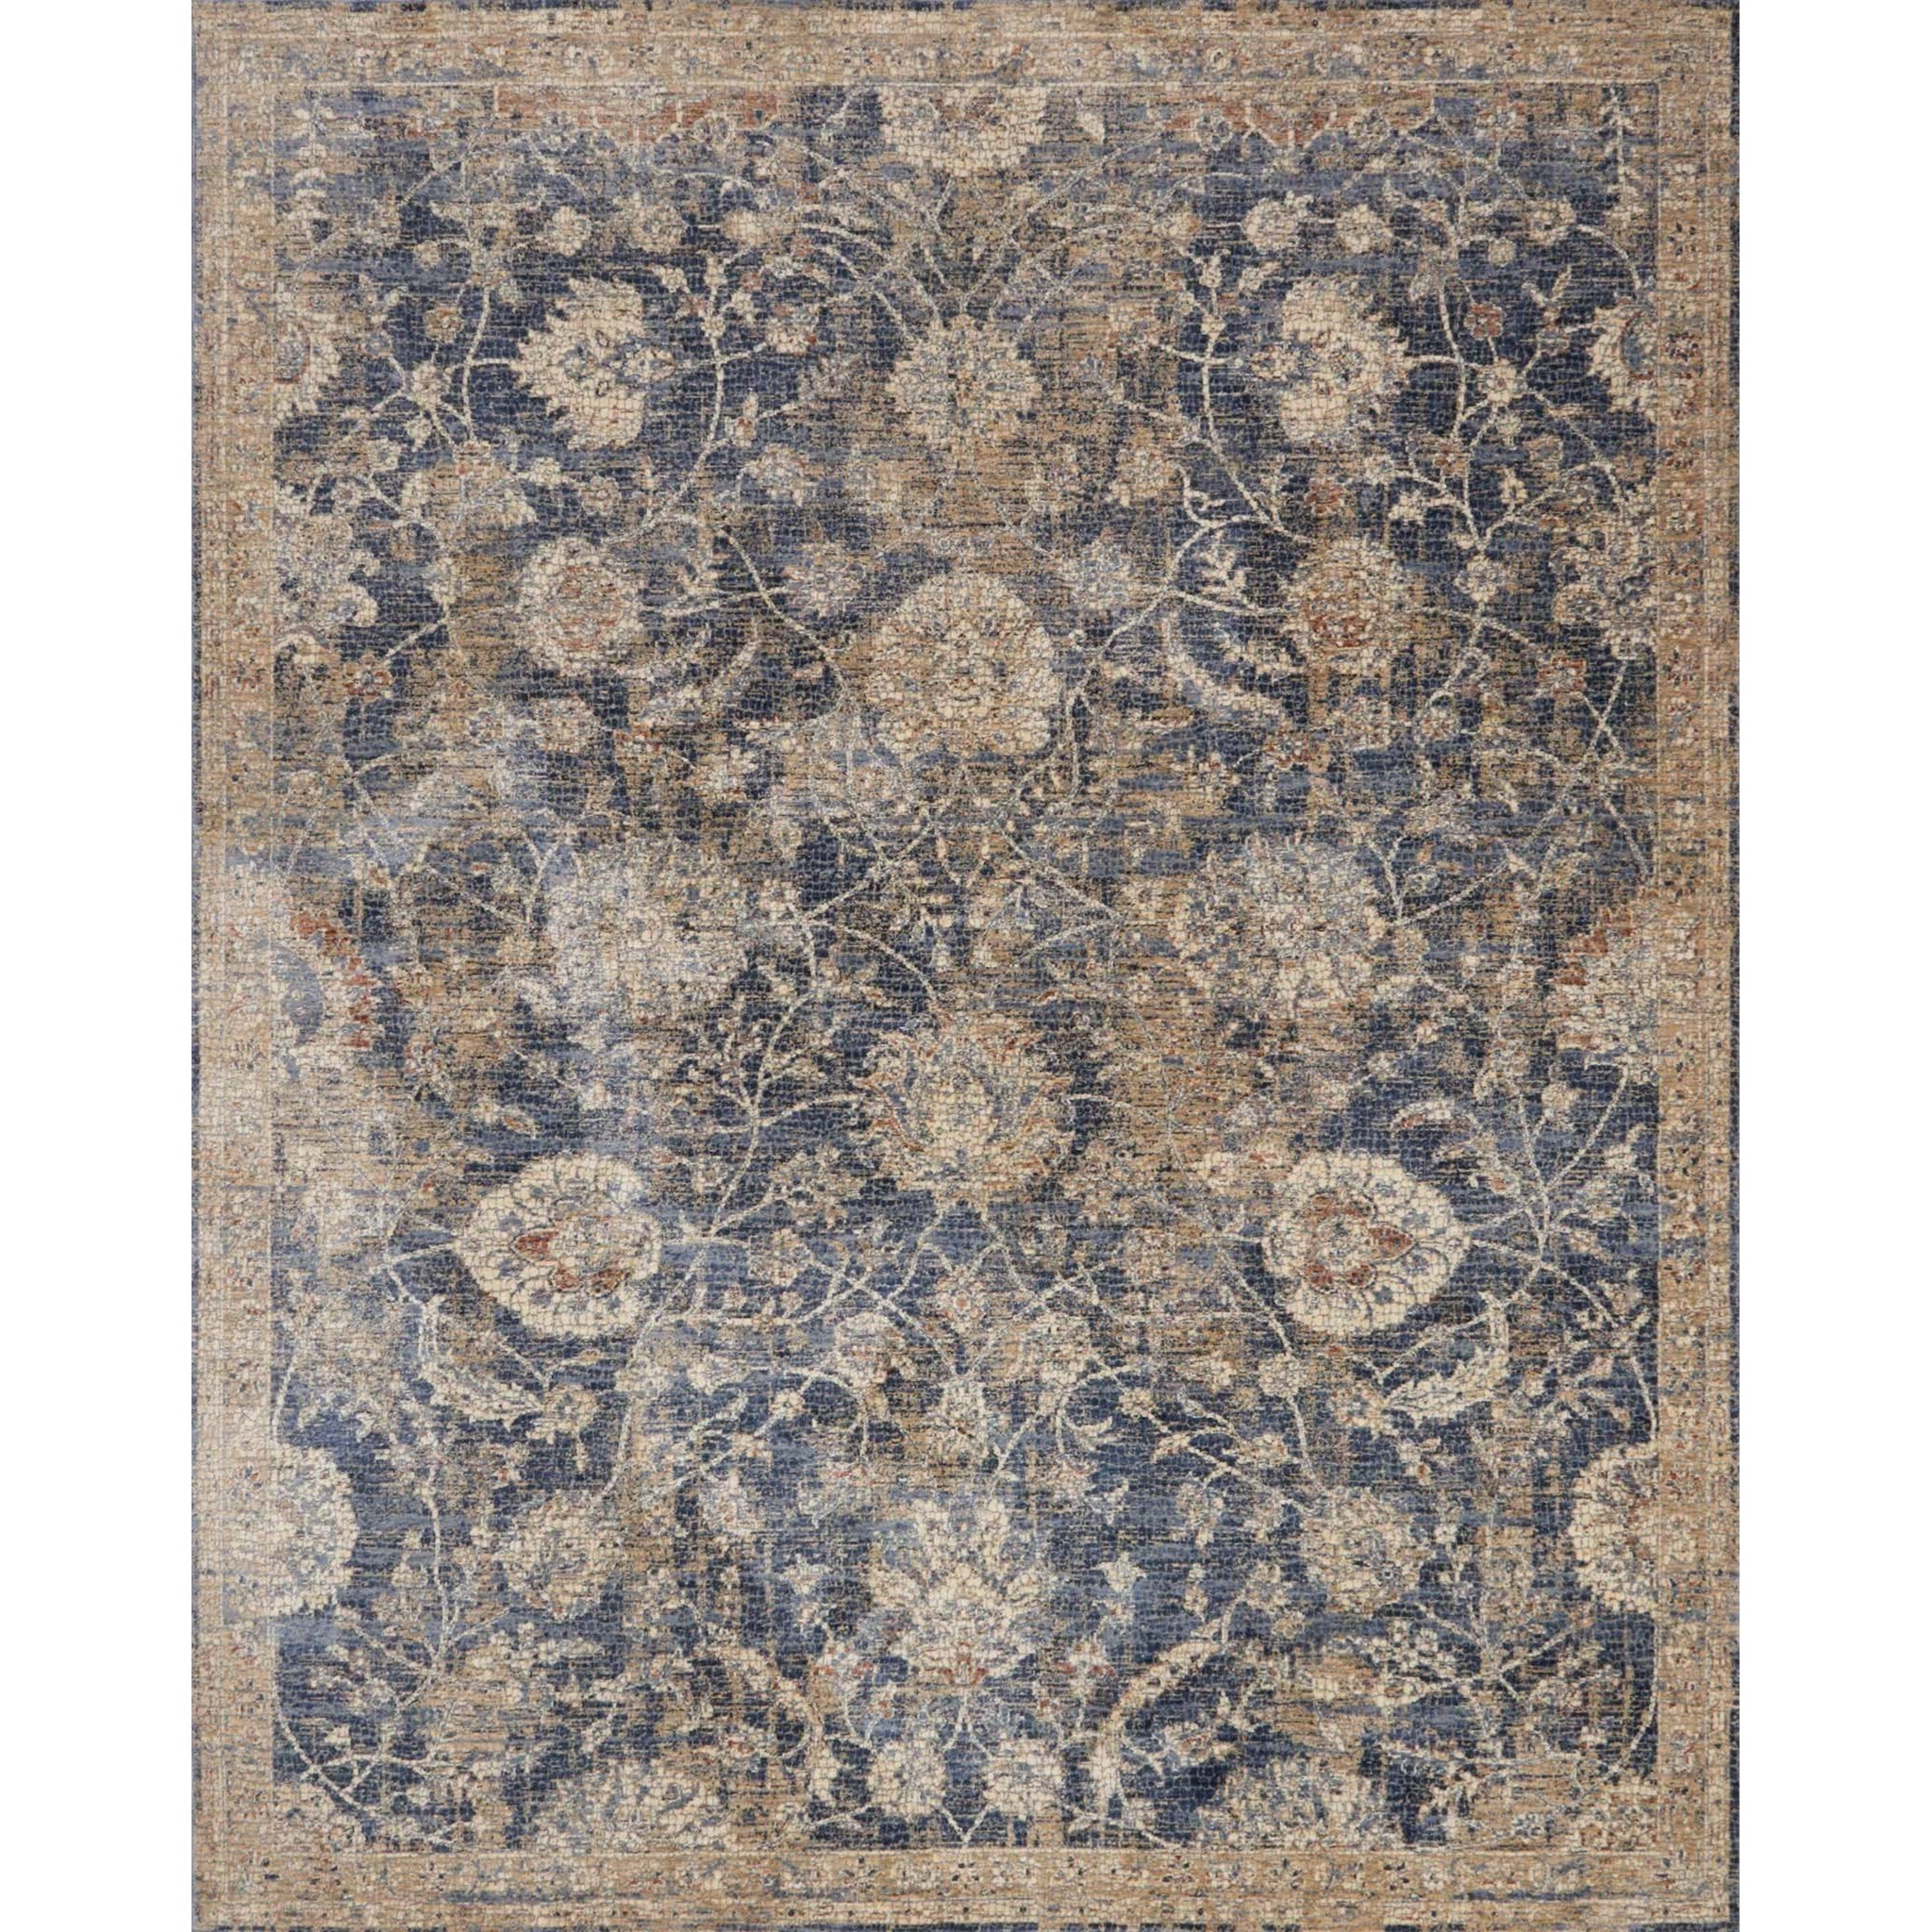 """Loloi Rugs Porcia 7'-10"""" X 10' Area Rug - Item Number: PORCPB-06BBBE7AA0"""